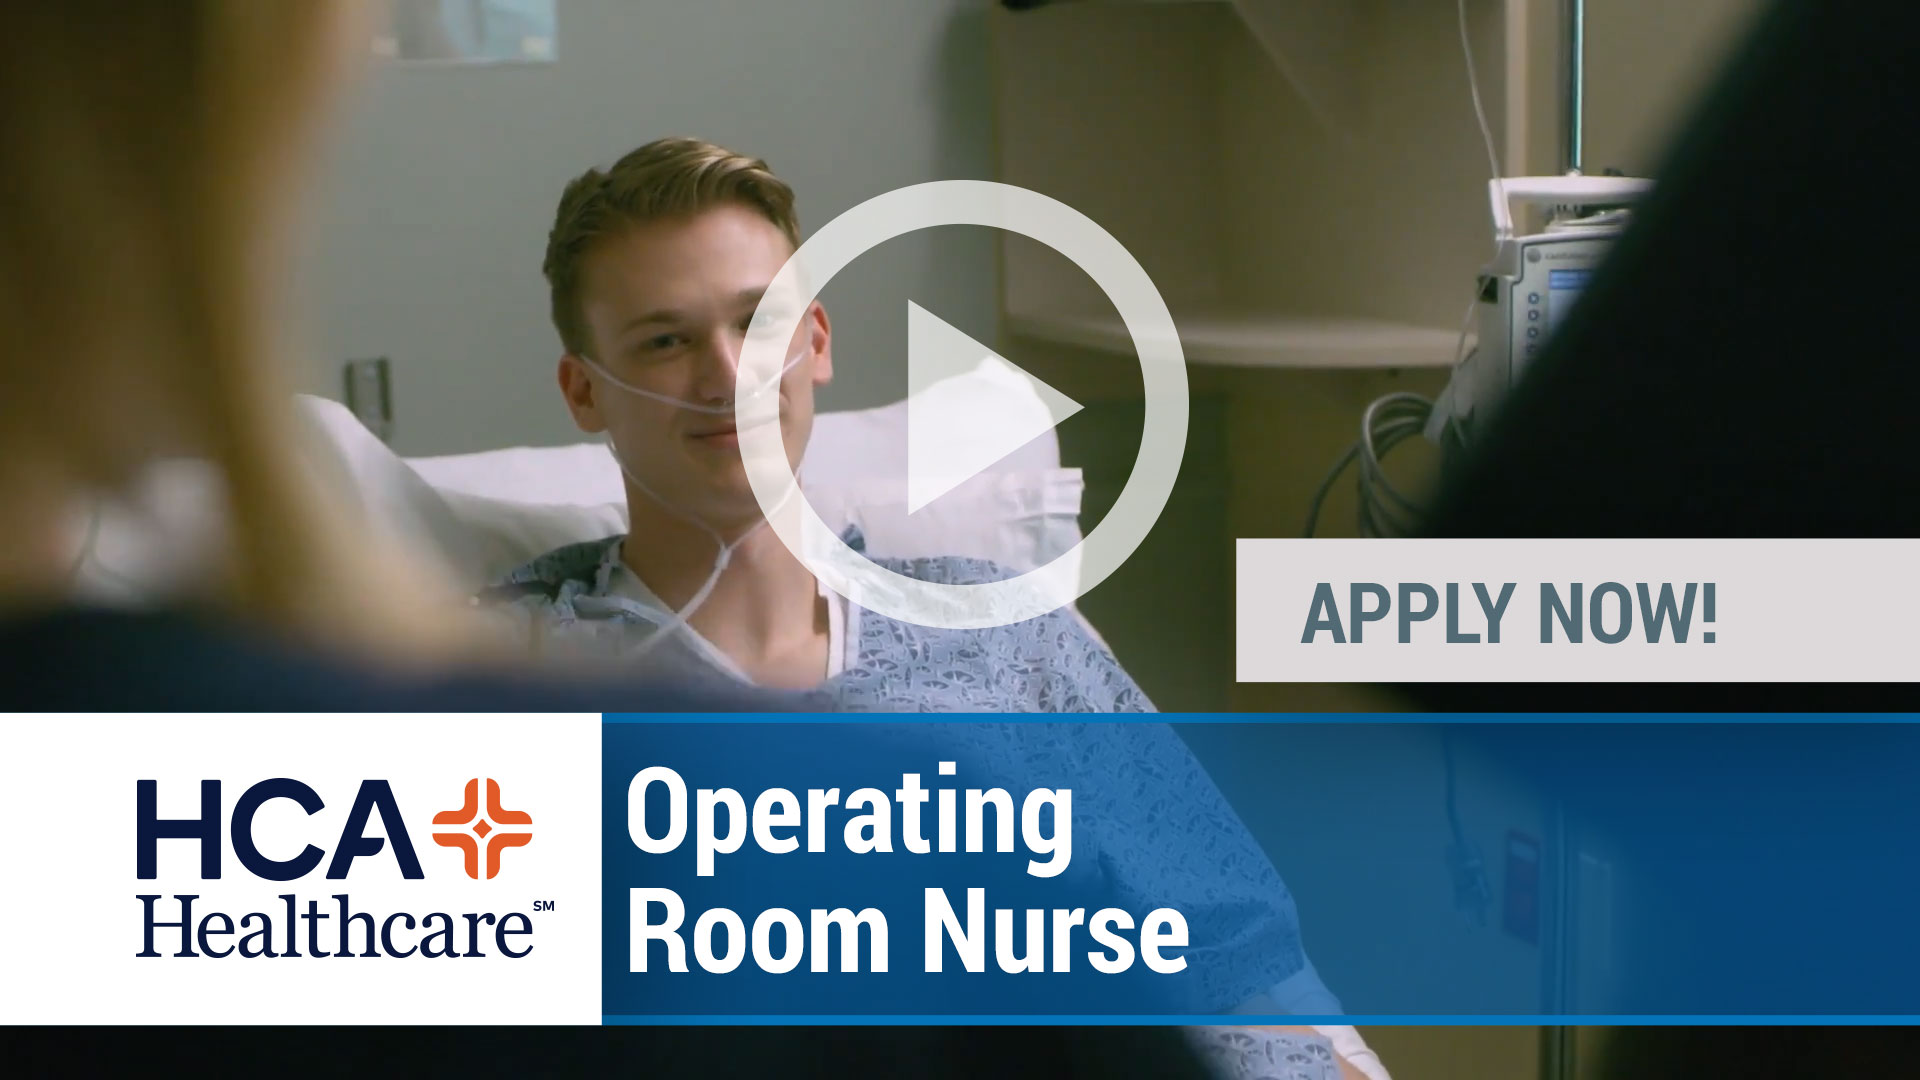 Watch our careers video for available job opening Operating Room Nurse in Brandon, Florida